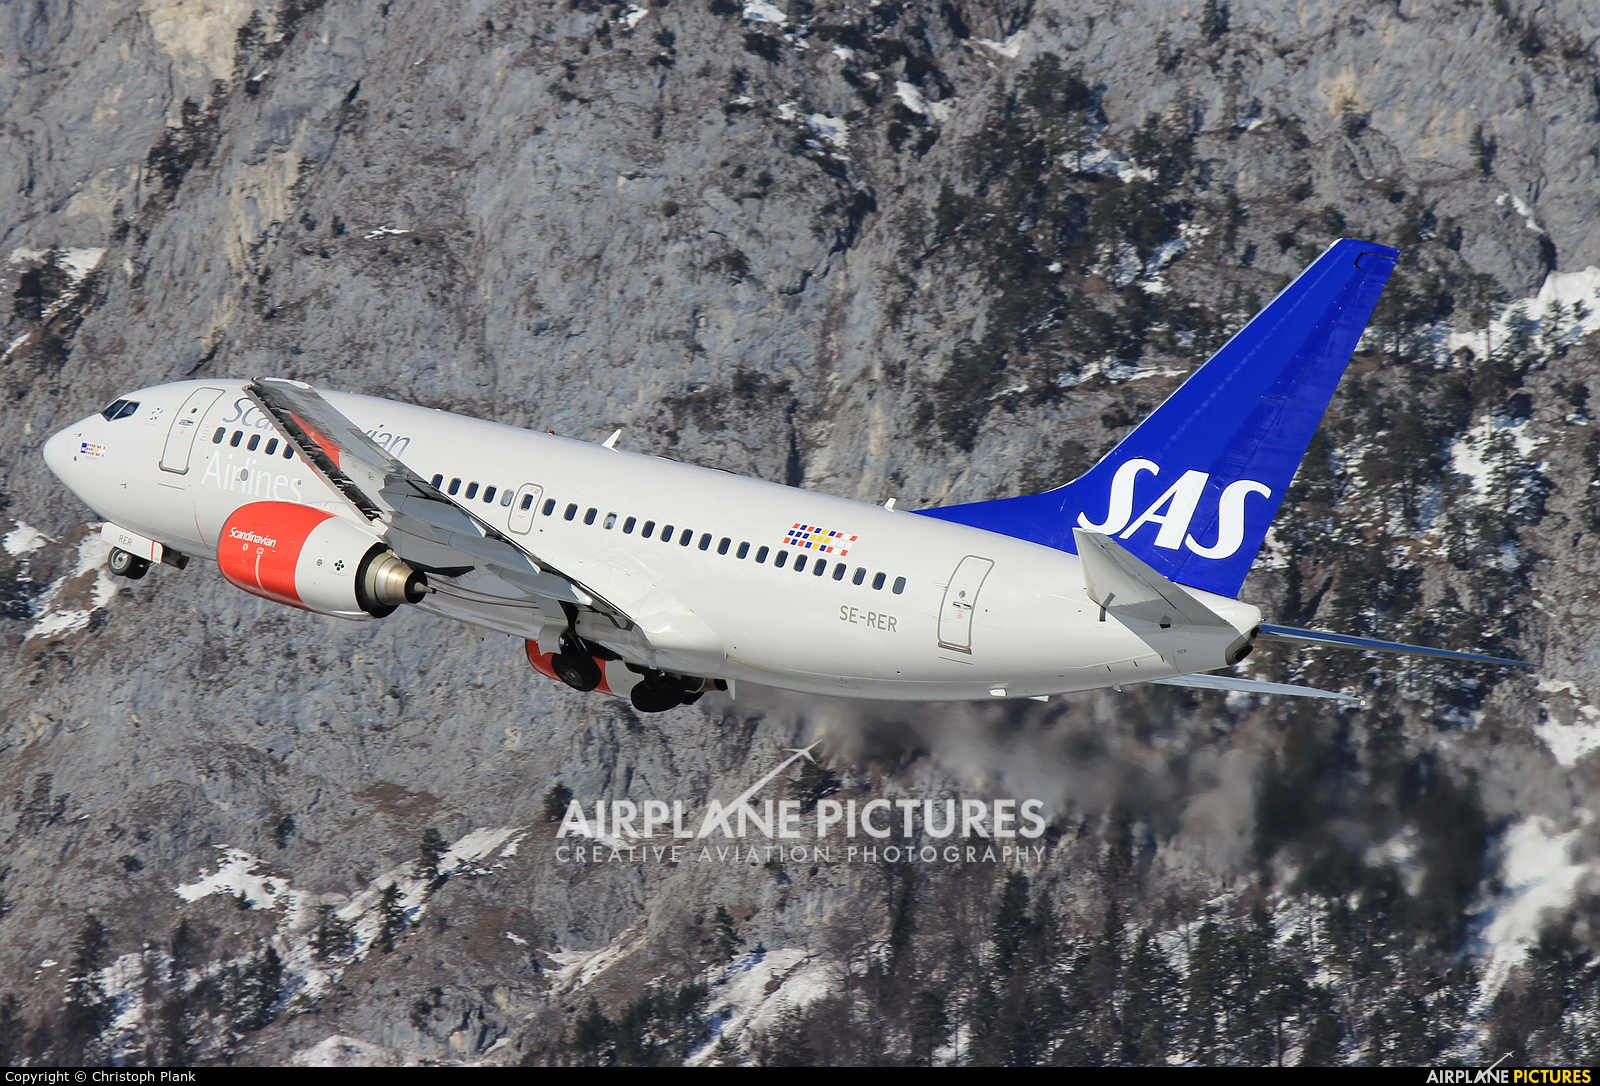 SAS - Scandinavian Airlines SE-RER aircraft at Innsbruck